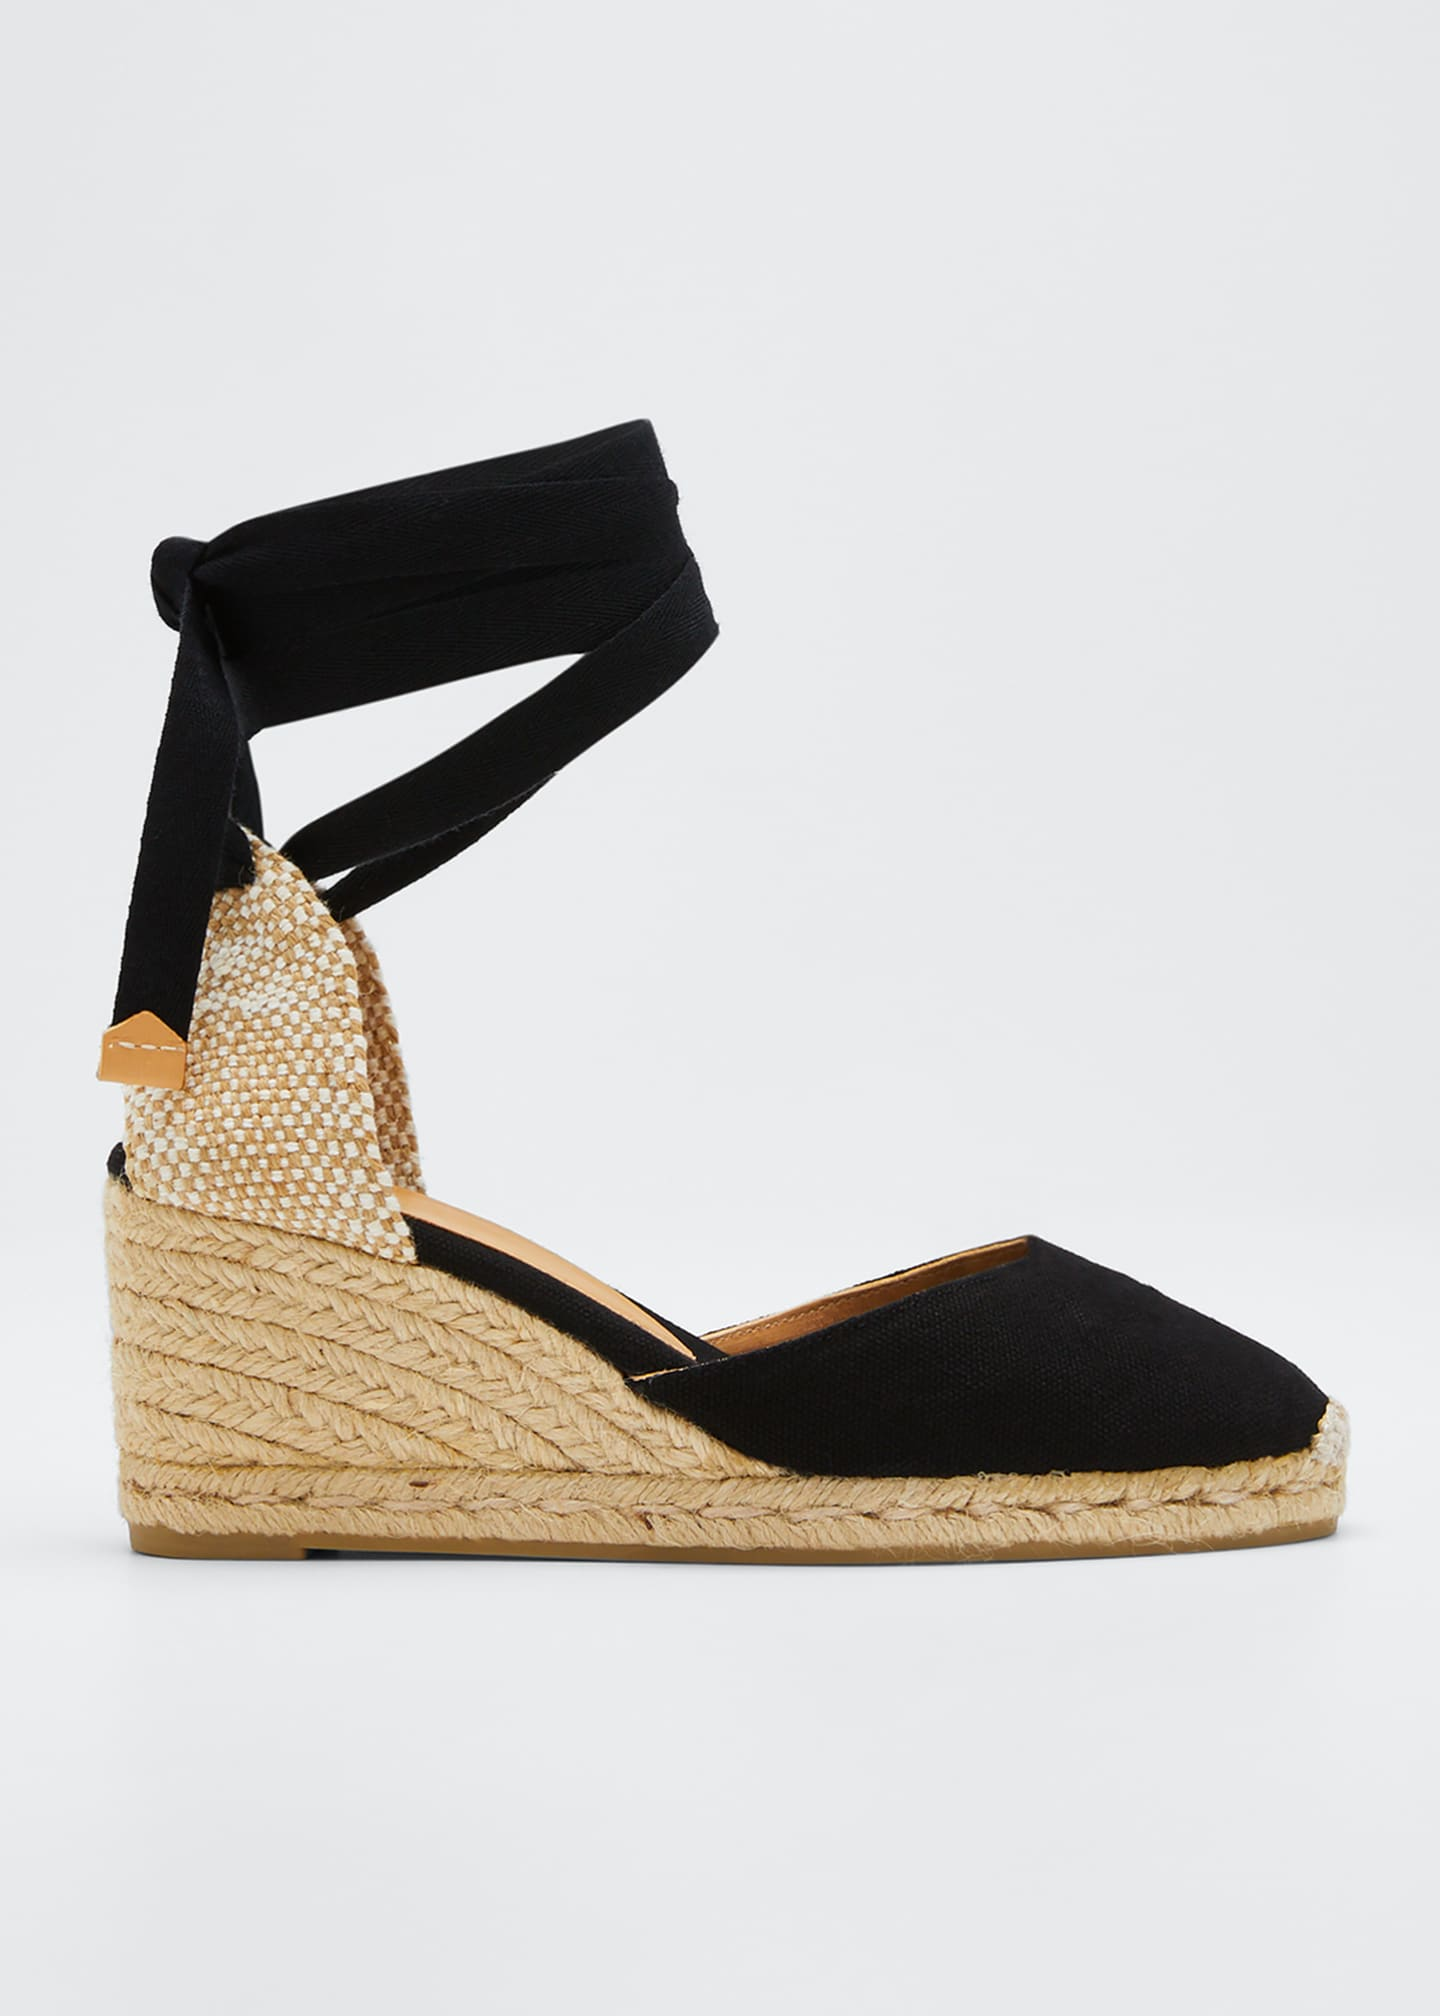 Castaner Leather Wedge Espadrille Pumps